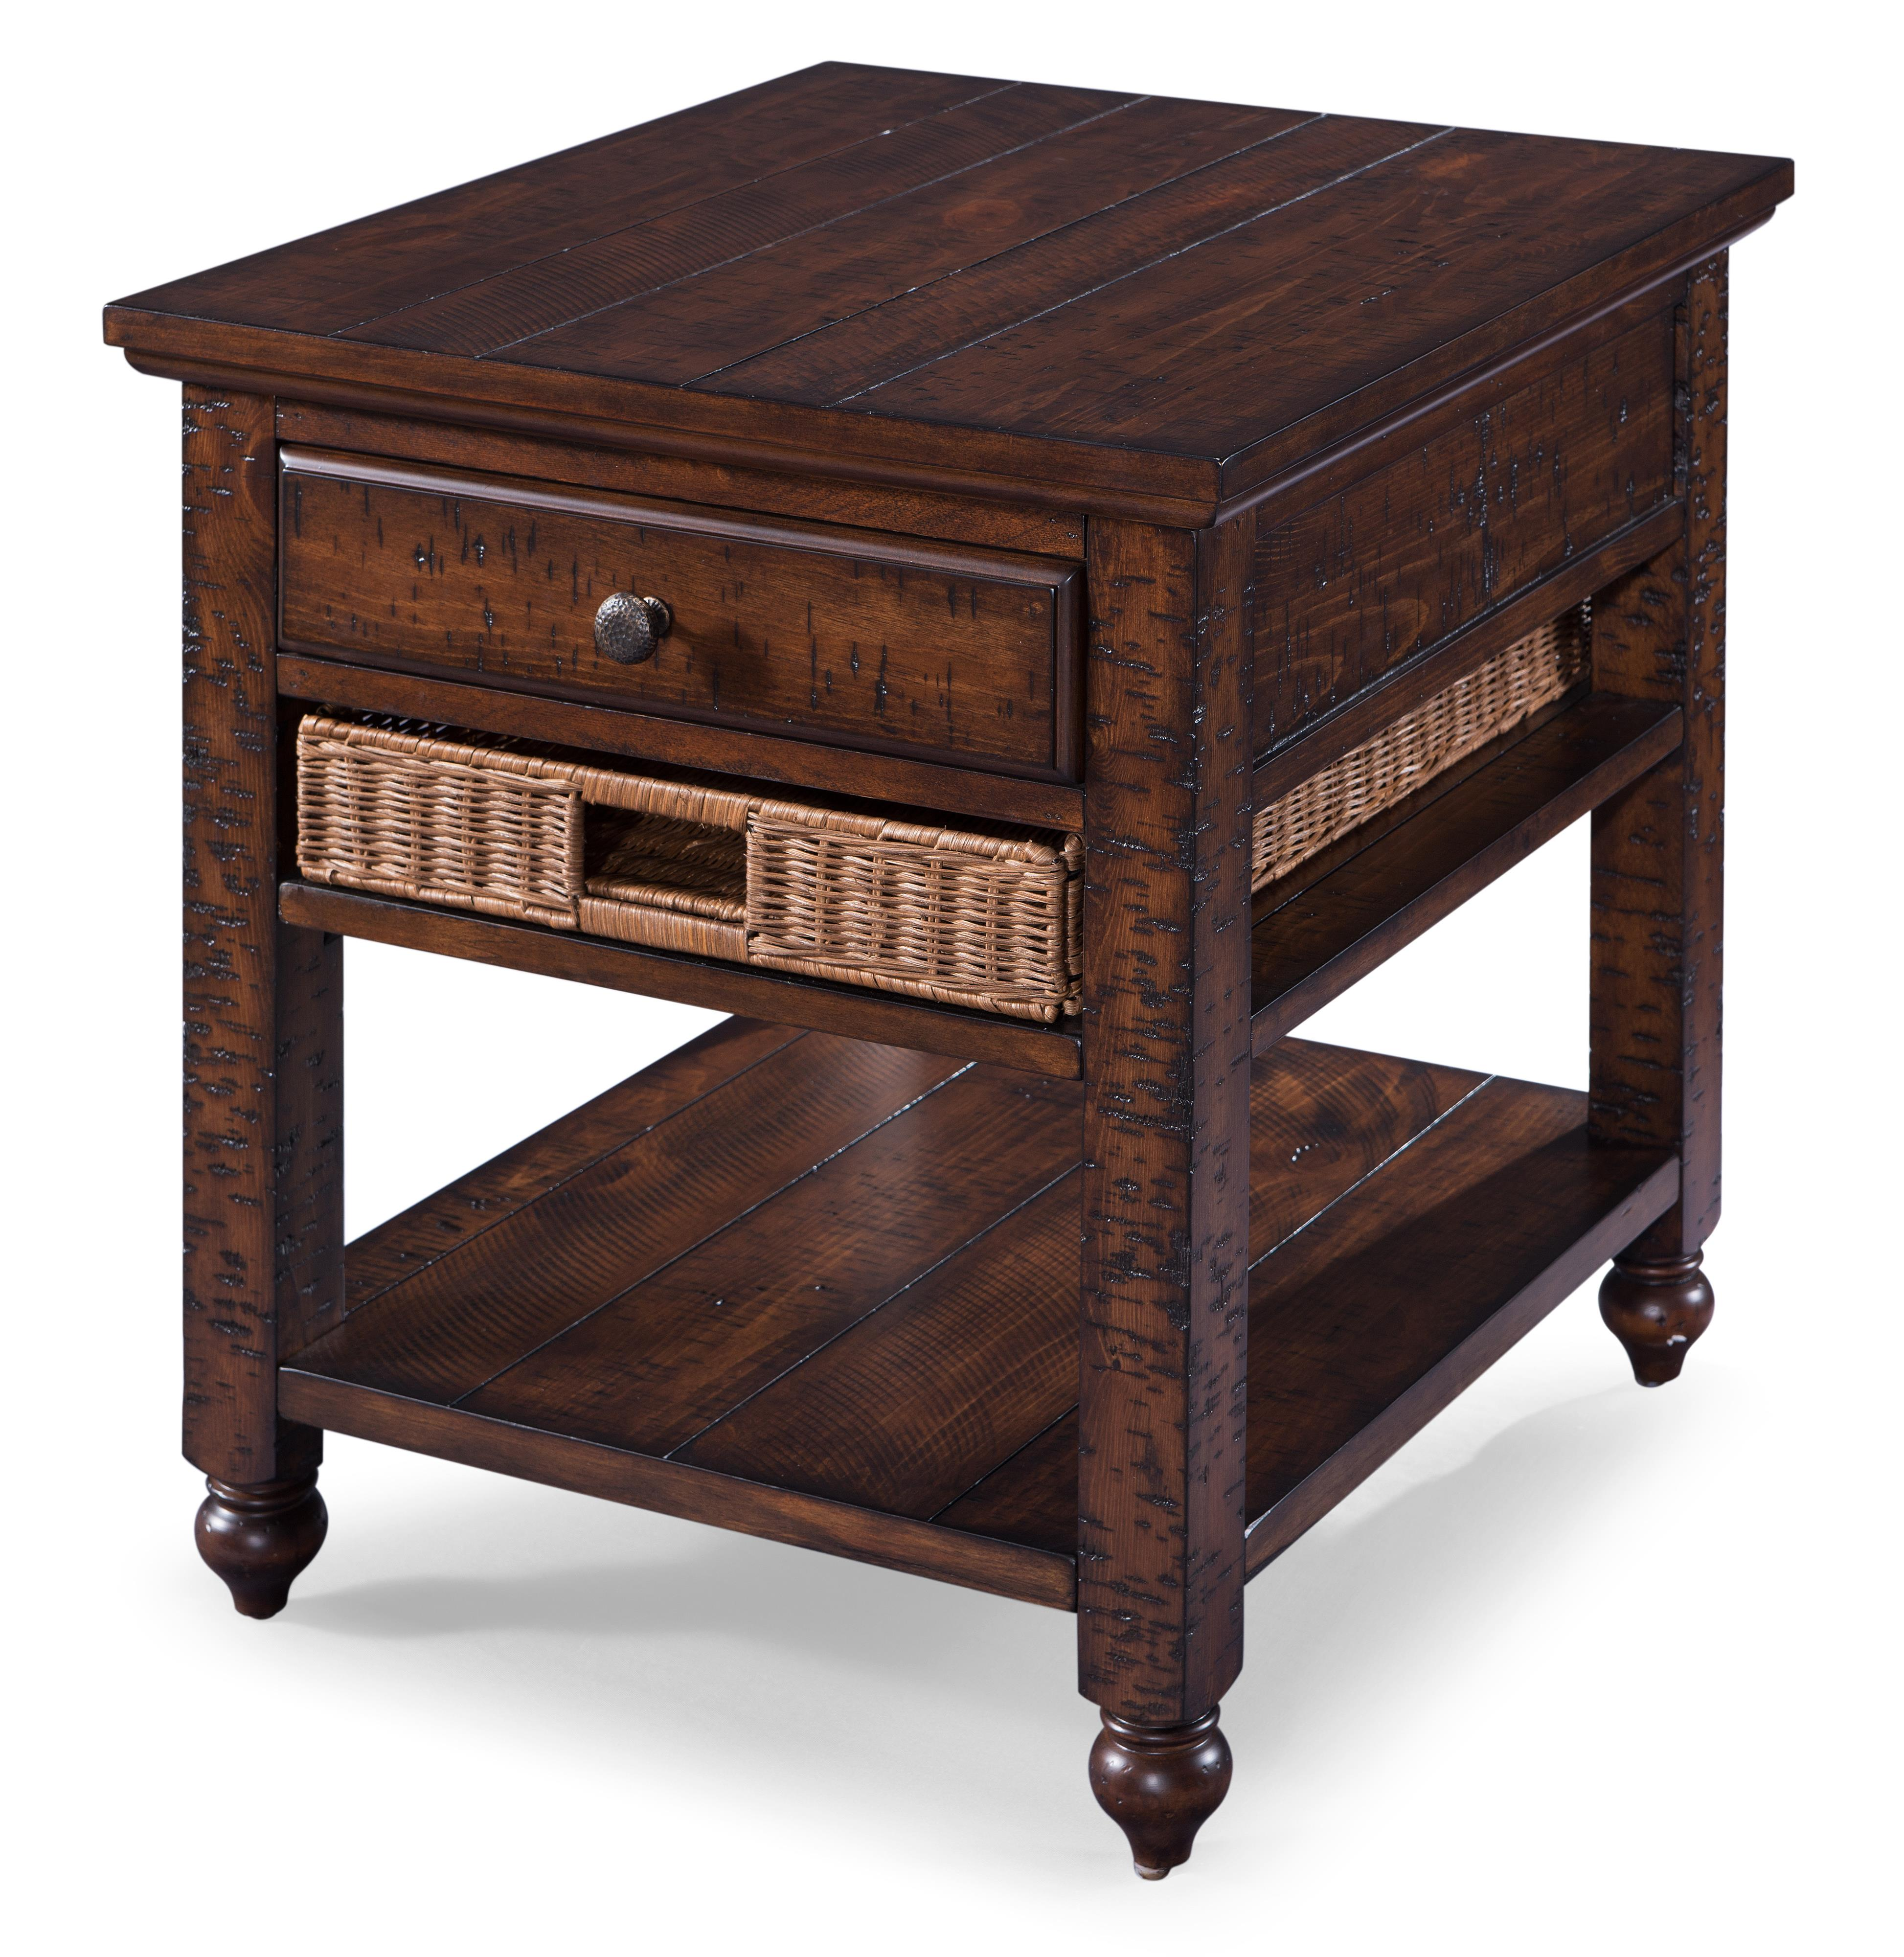 Cottage Lane Rectangular End Table by Magnussen Home at Johnny Janosik